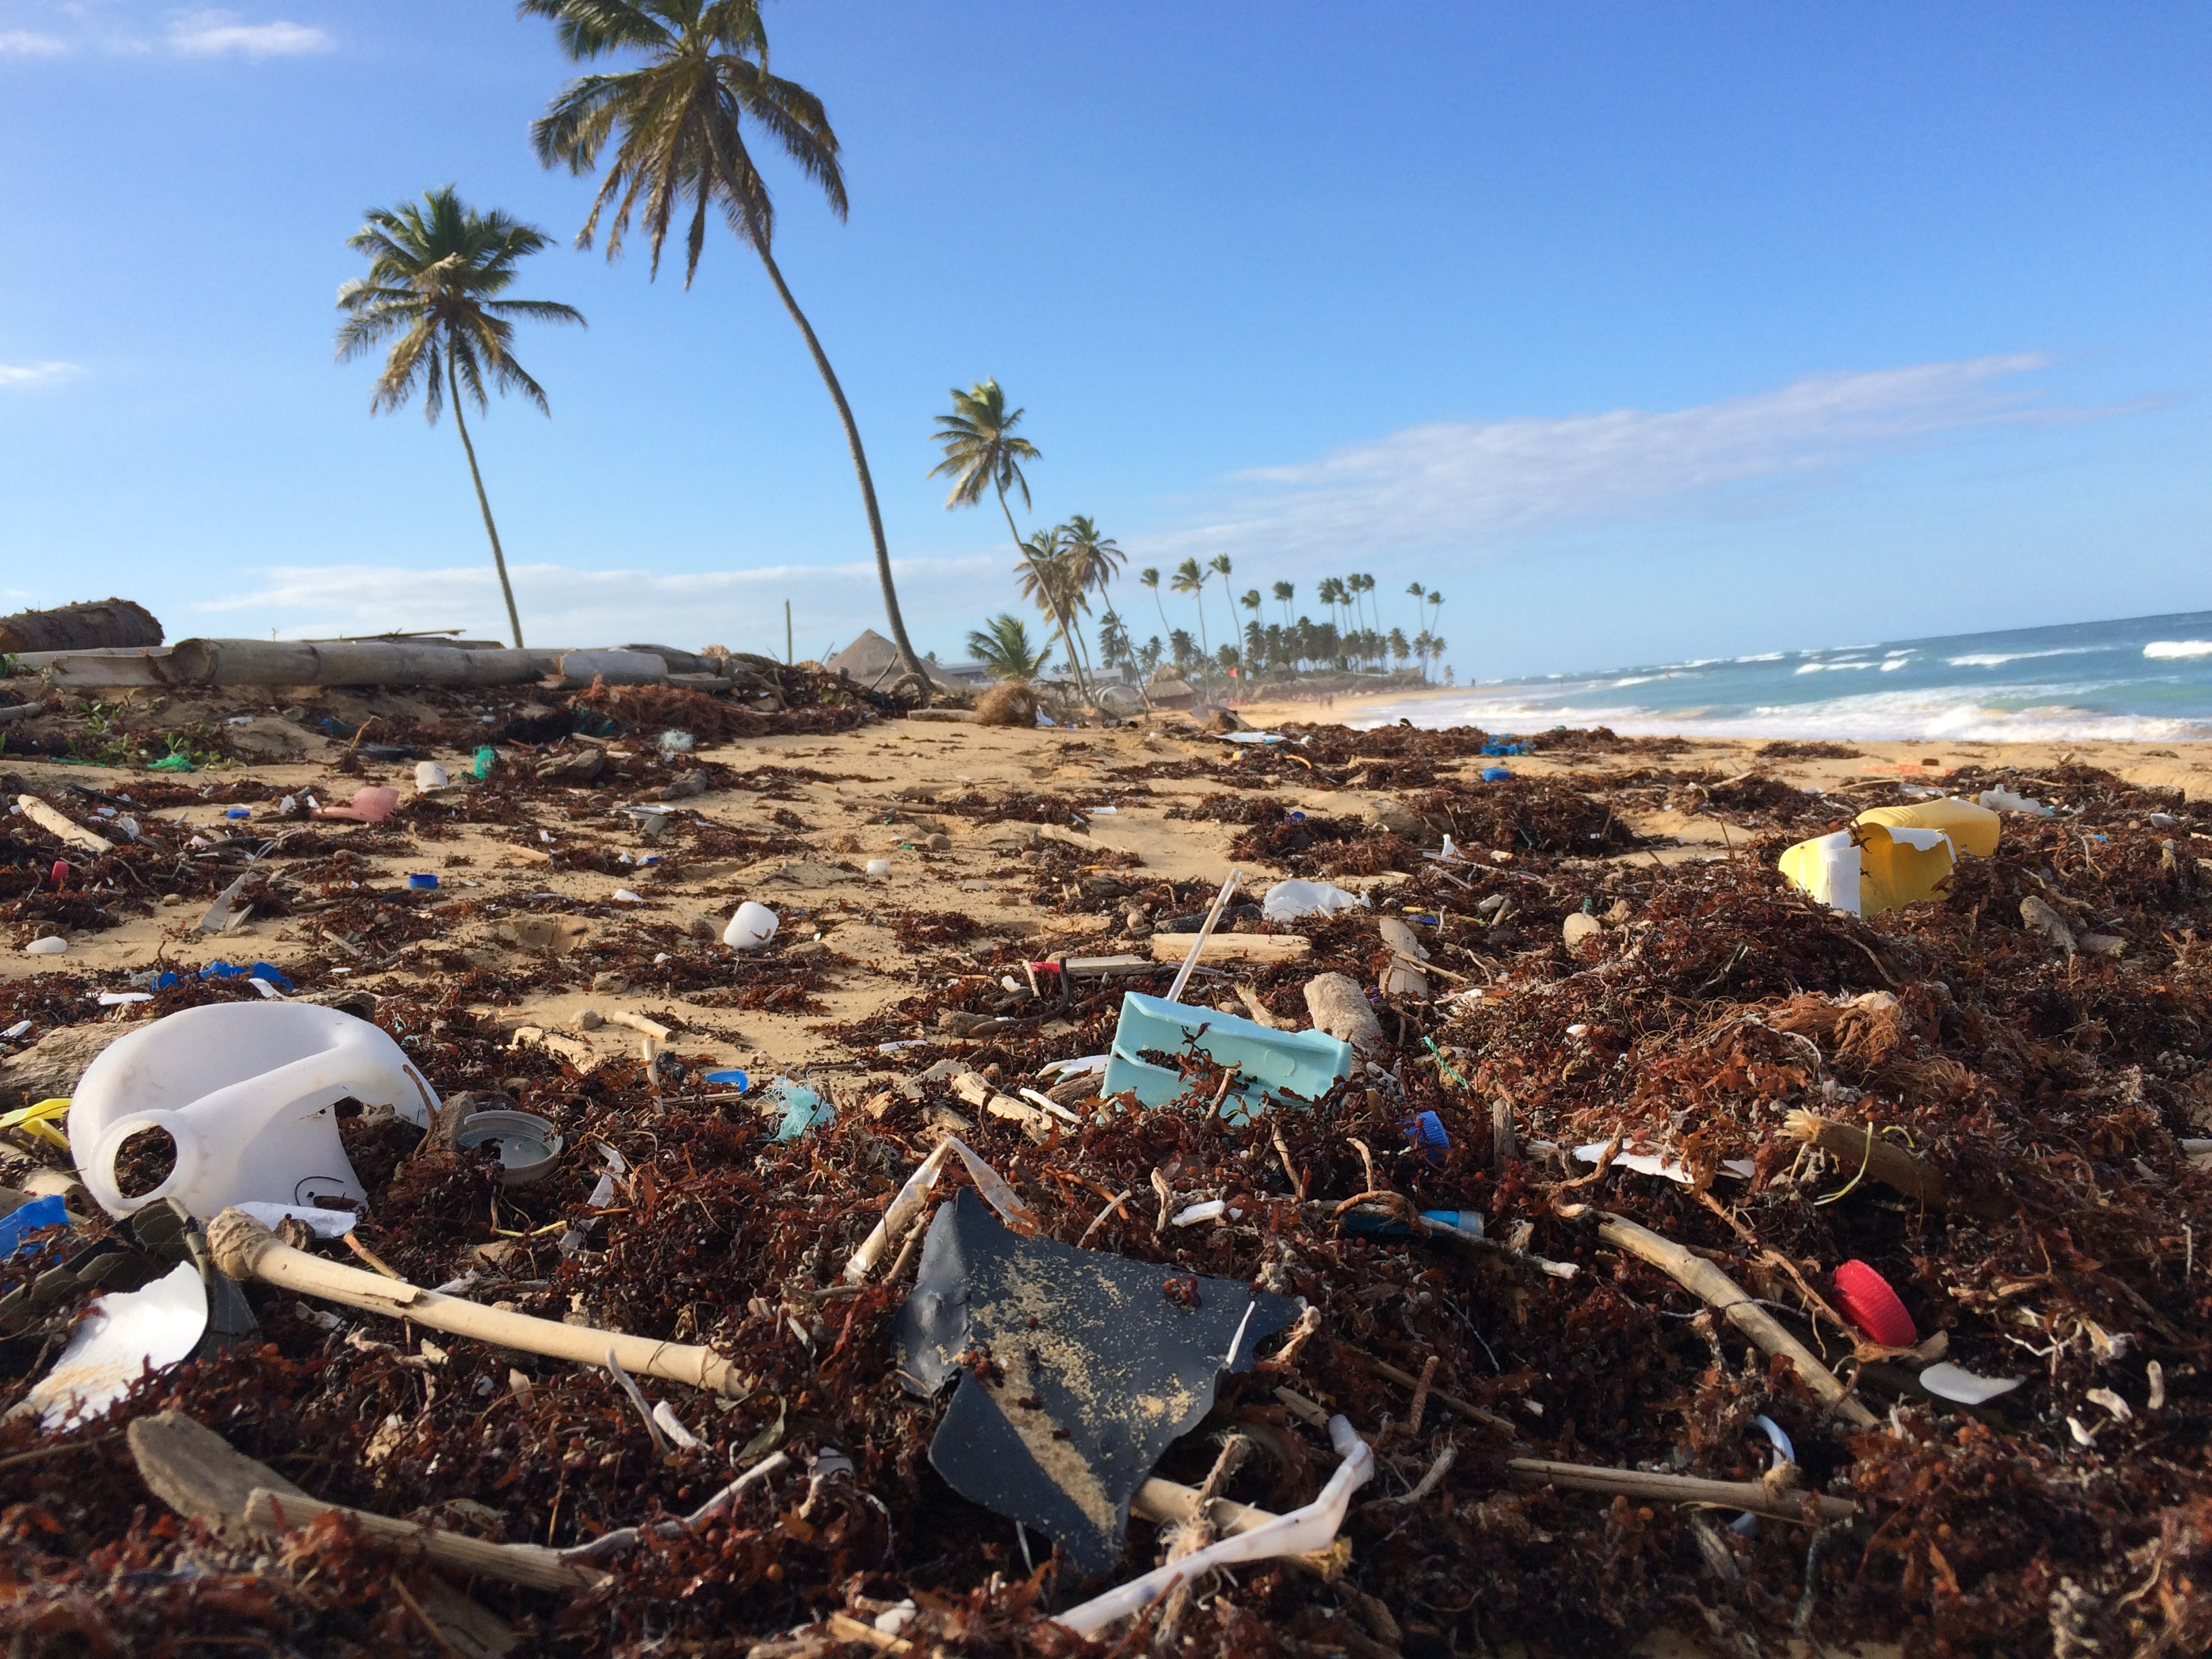 Plastic from Australia, China and Denmark ends up on Mexican shores